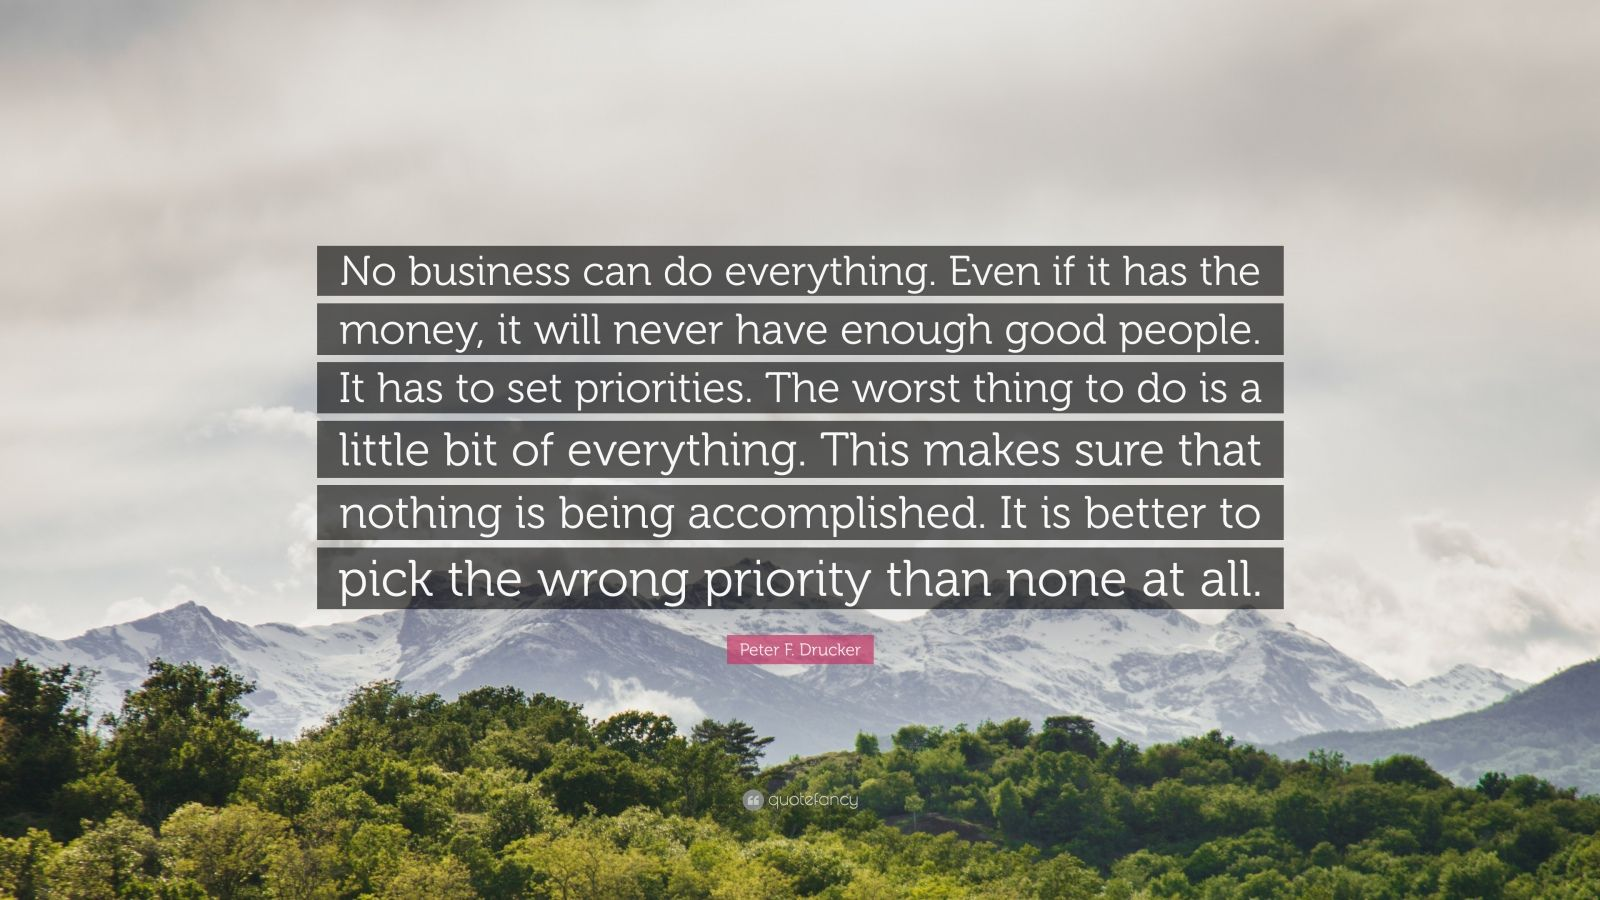 """Peter F. Drucker Quote: """"No business can do everything. Even if it has the money, it will never have enough good people. It has to set priorities. The worst thing to do is a little bit of everything. This makes sure that nothing is being accomplished. It is better to pick the wrong priority than none at all."""""""